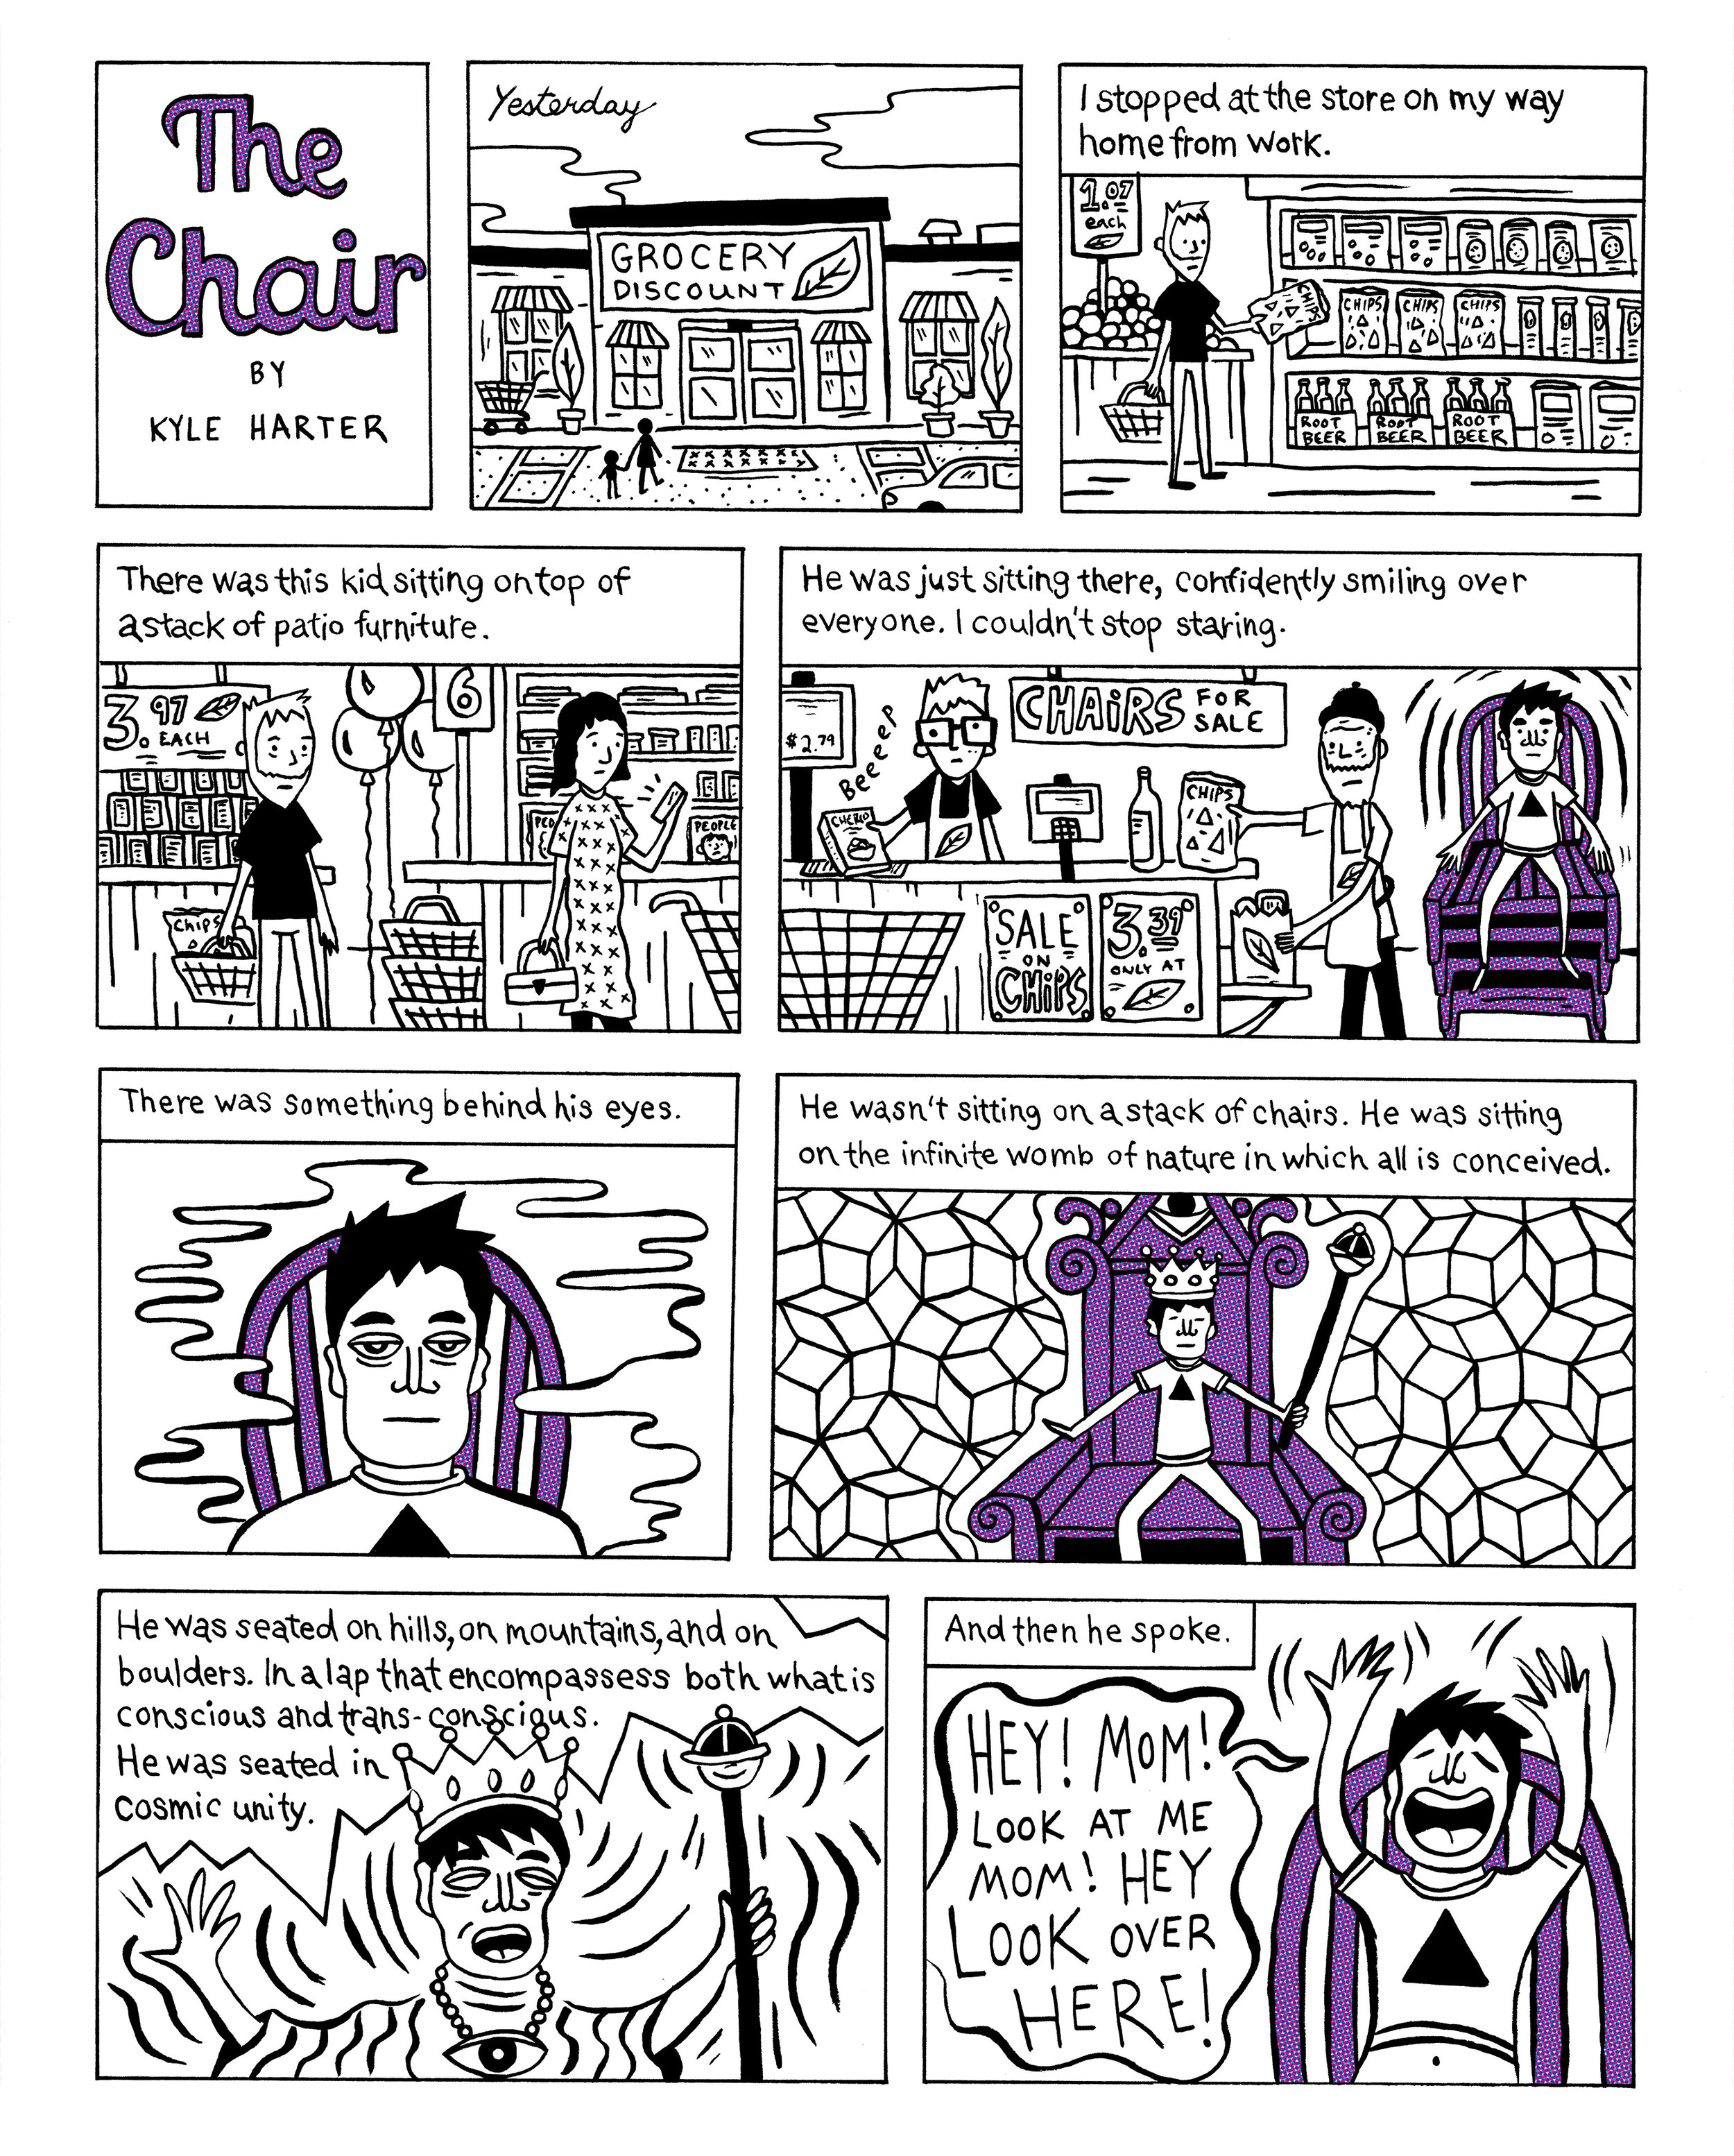 TheChair_page1_color.jpg